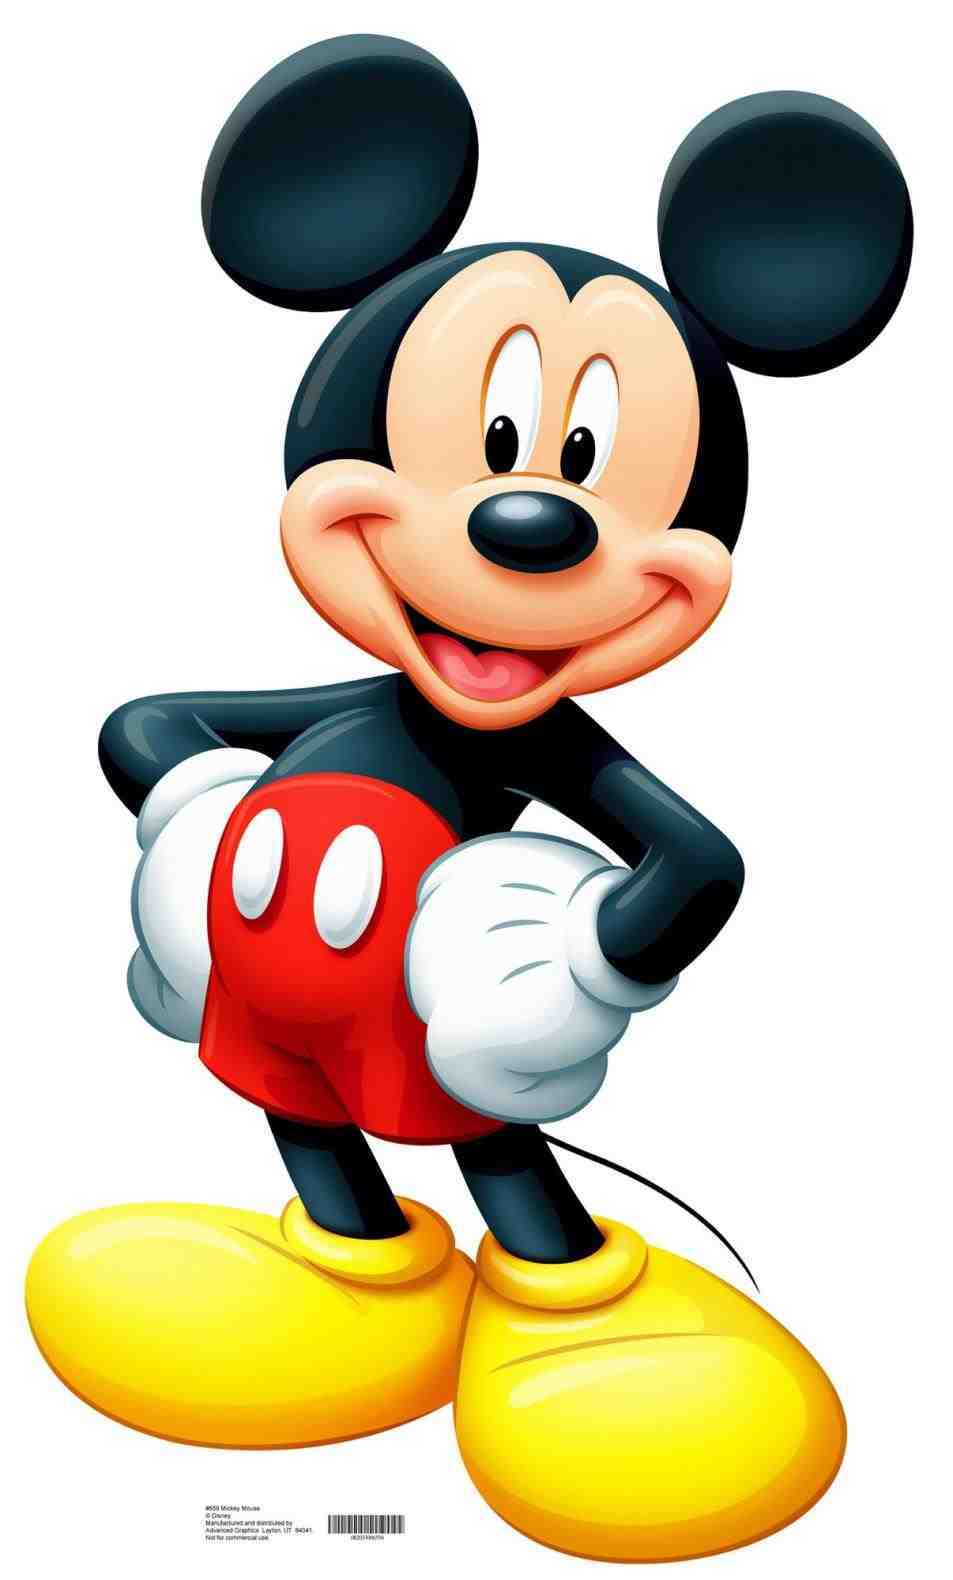 953x1580 The Images Collection Of Speed Simple Mickey Mouse Drawing Gamgsta